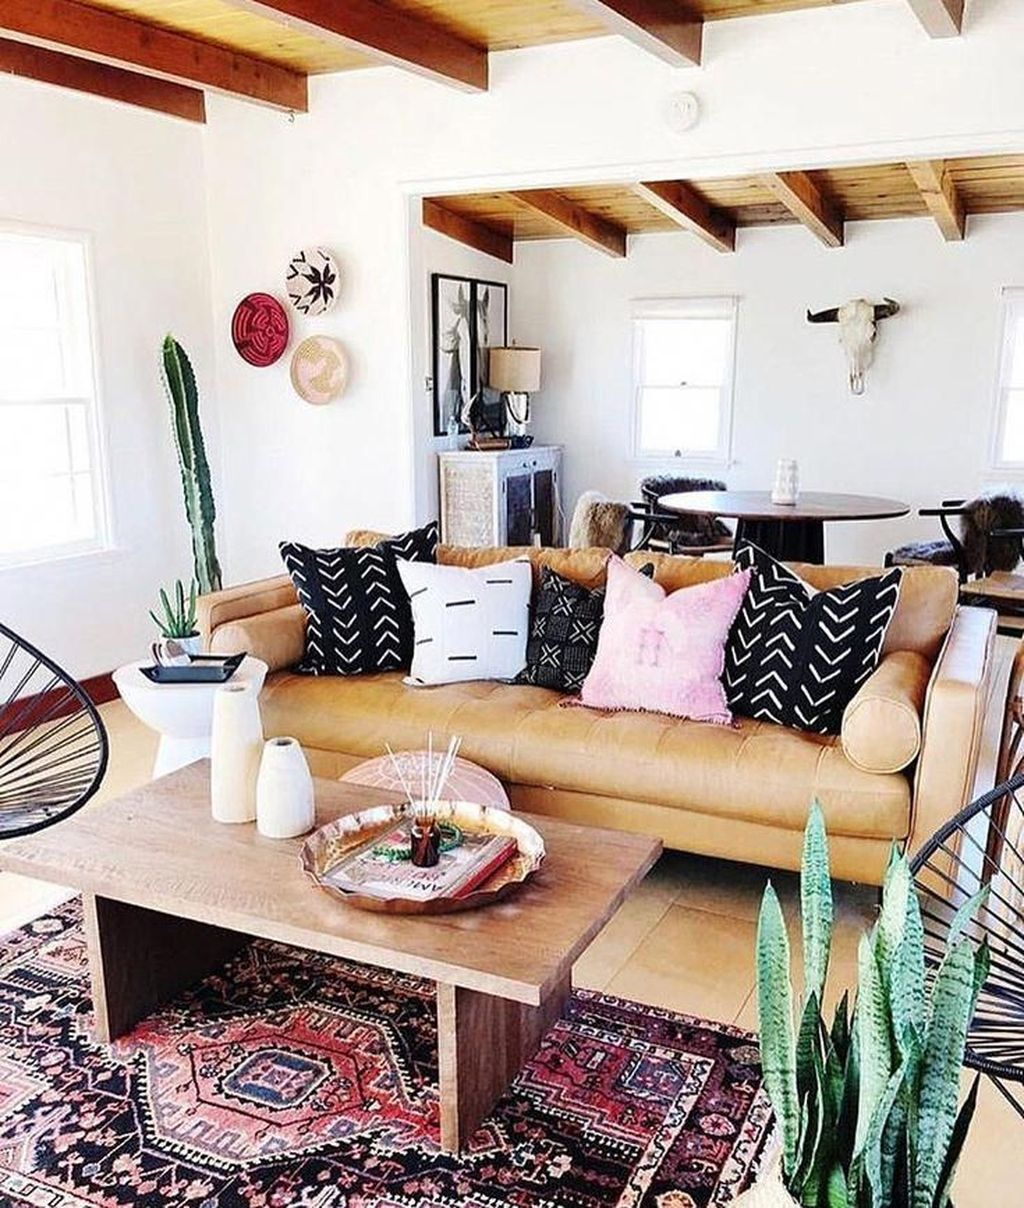 The Best Rustic Bohemian Living Room Decor Ideas 27